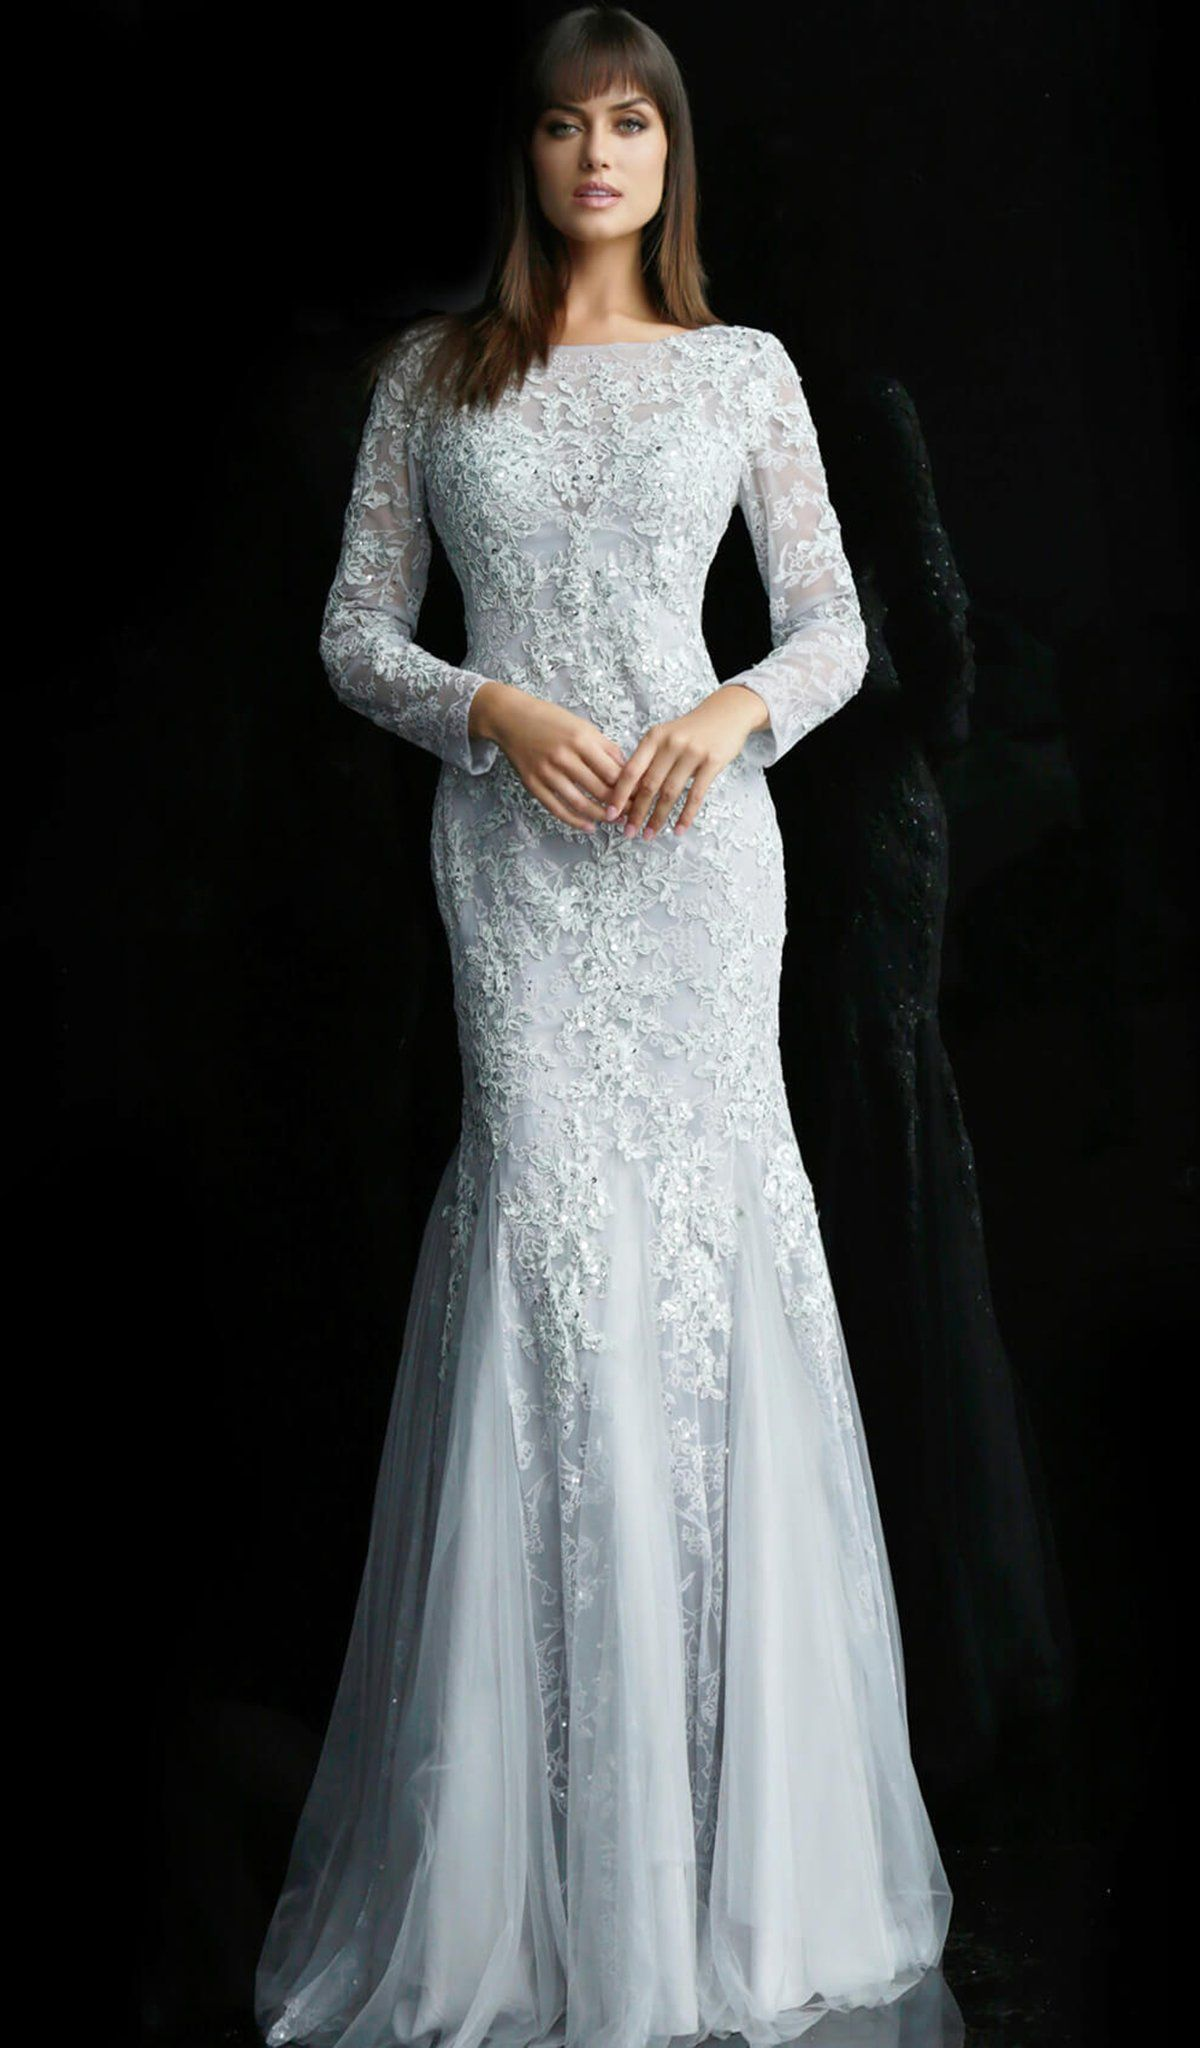 Jovani - 62766 Long Sleeve Ornate Lace Trumpet Gown | Lace ...